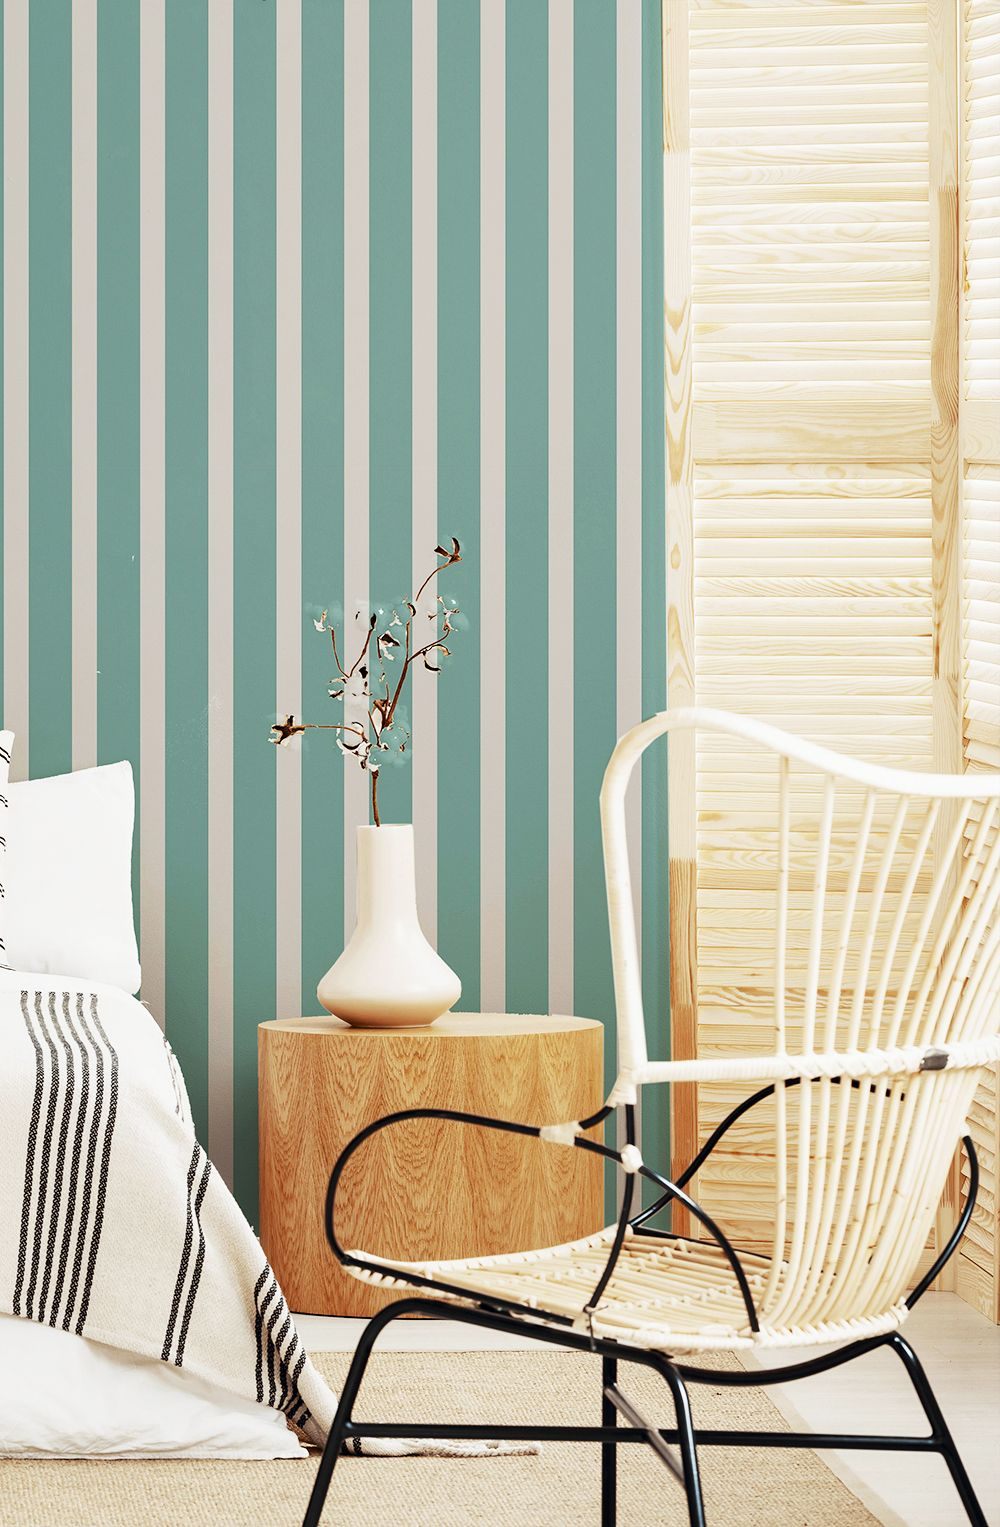 Green And Grey Vertical Peel And Stick Removable Wallpaper 20 2 Removable Wallpaper Green And Grey Amazing Spaces